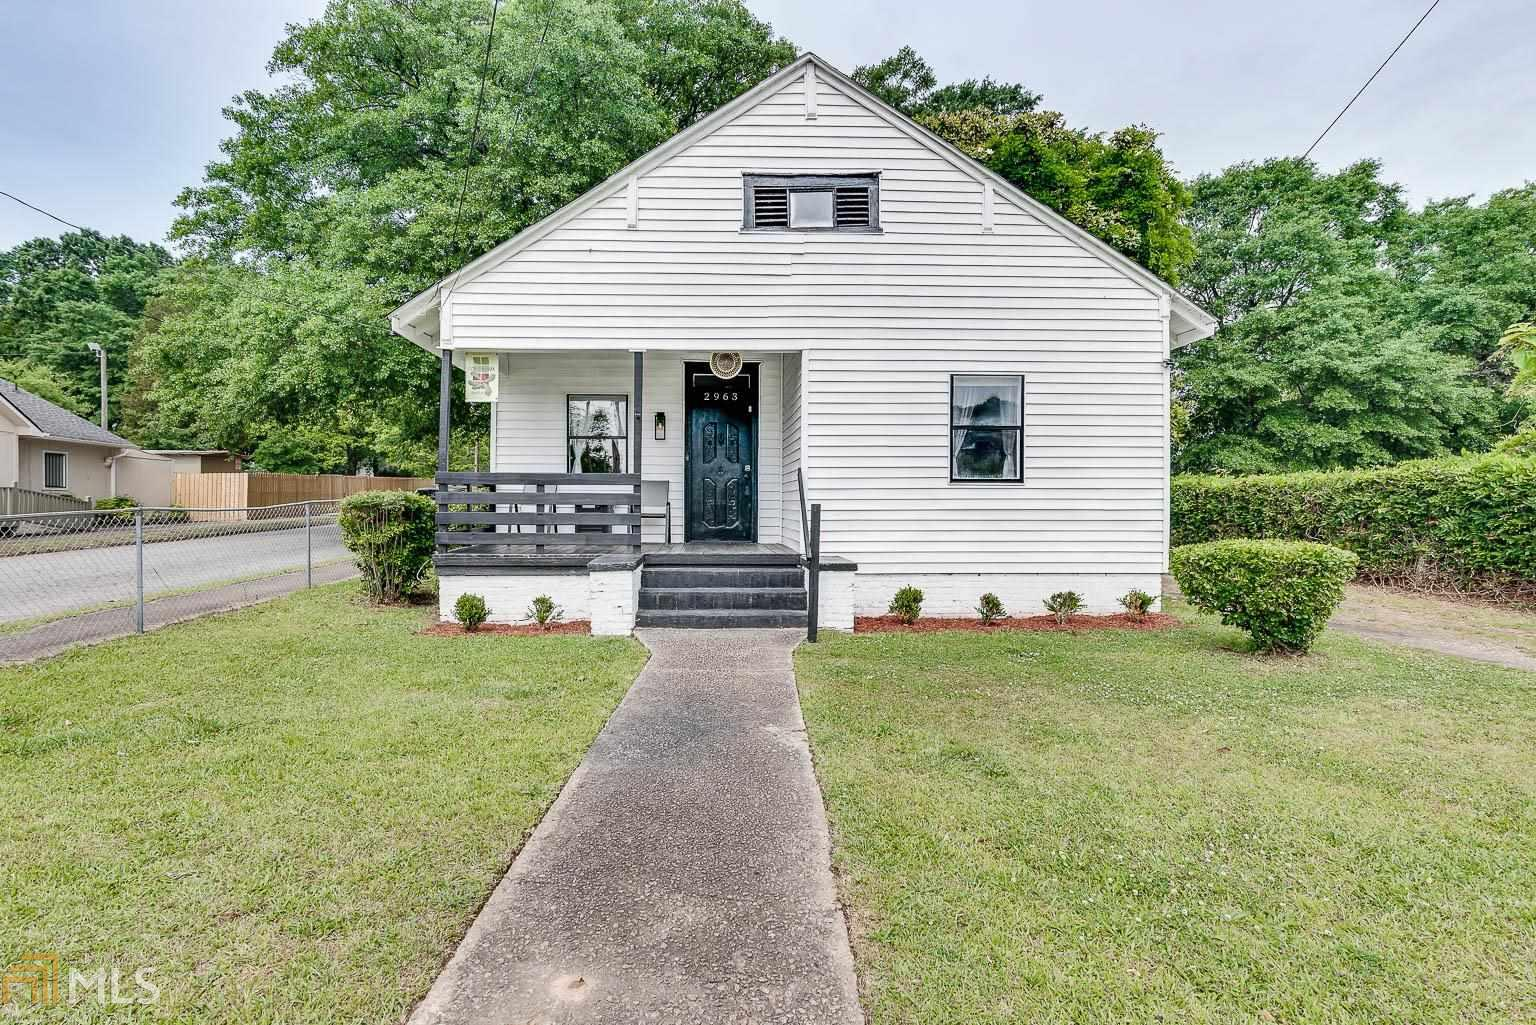 Image for property 2963 Church St, East Point, GA 30344